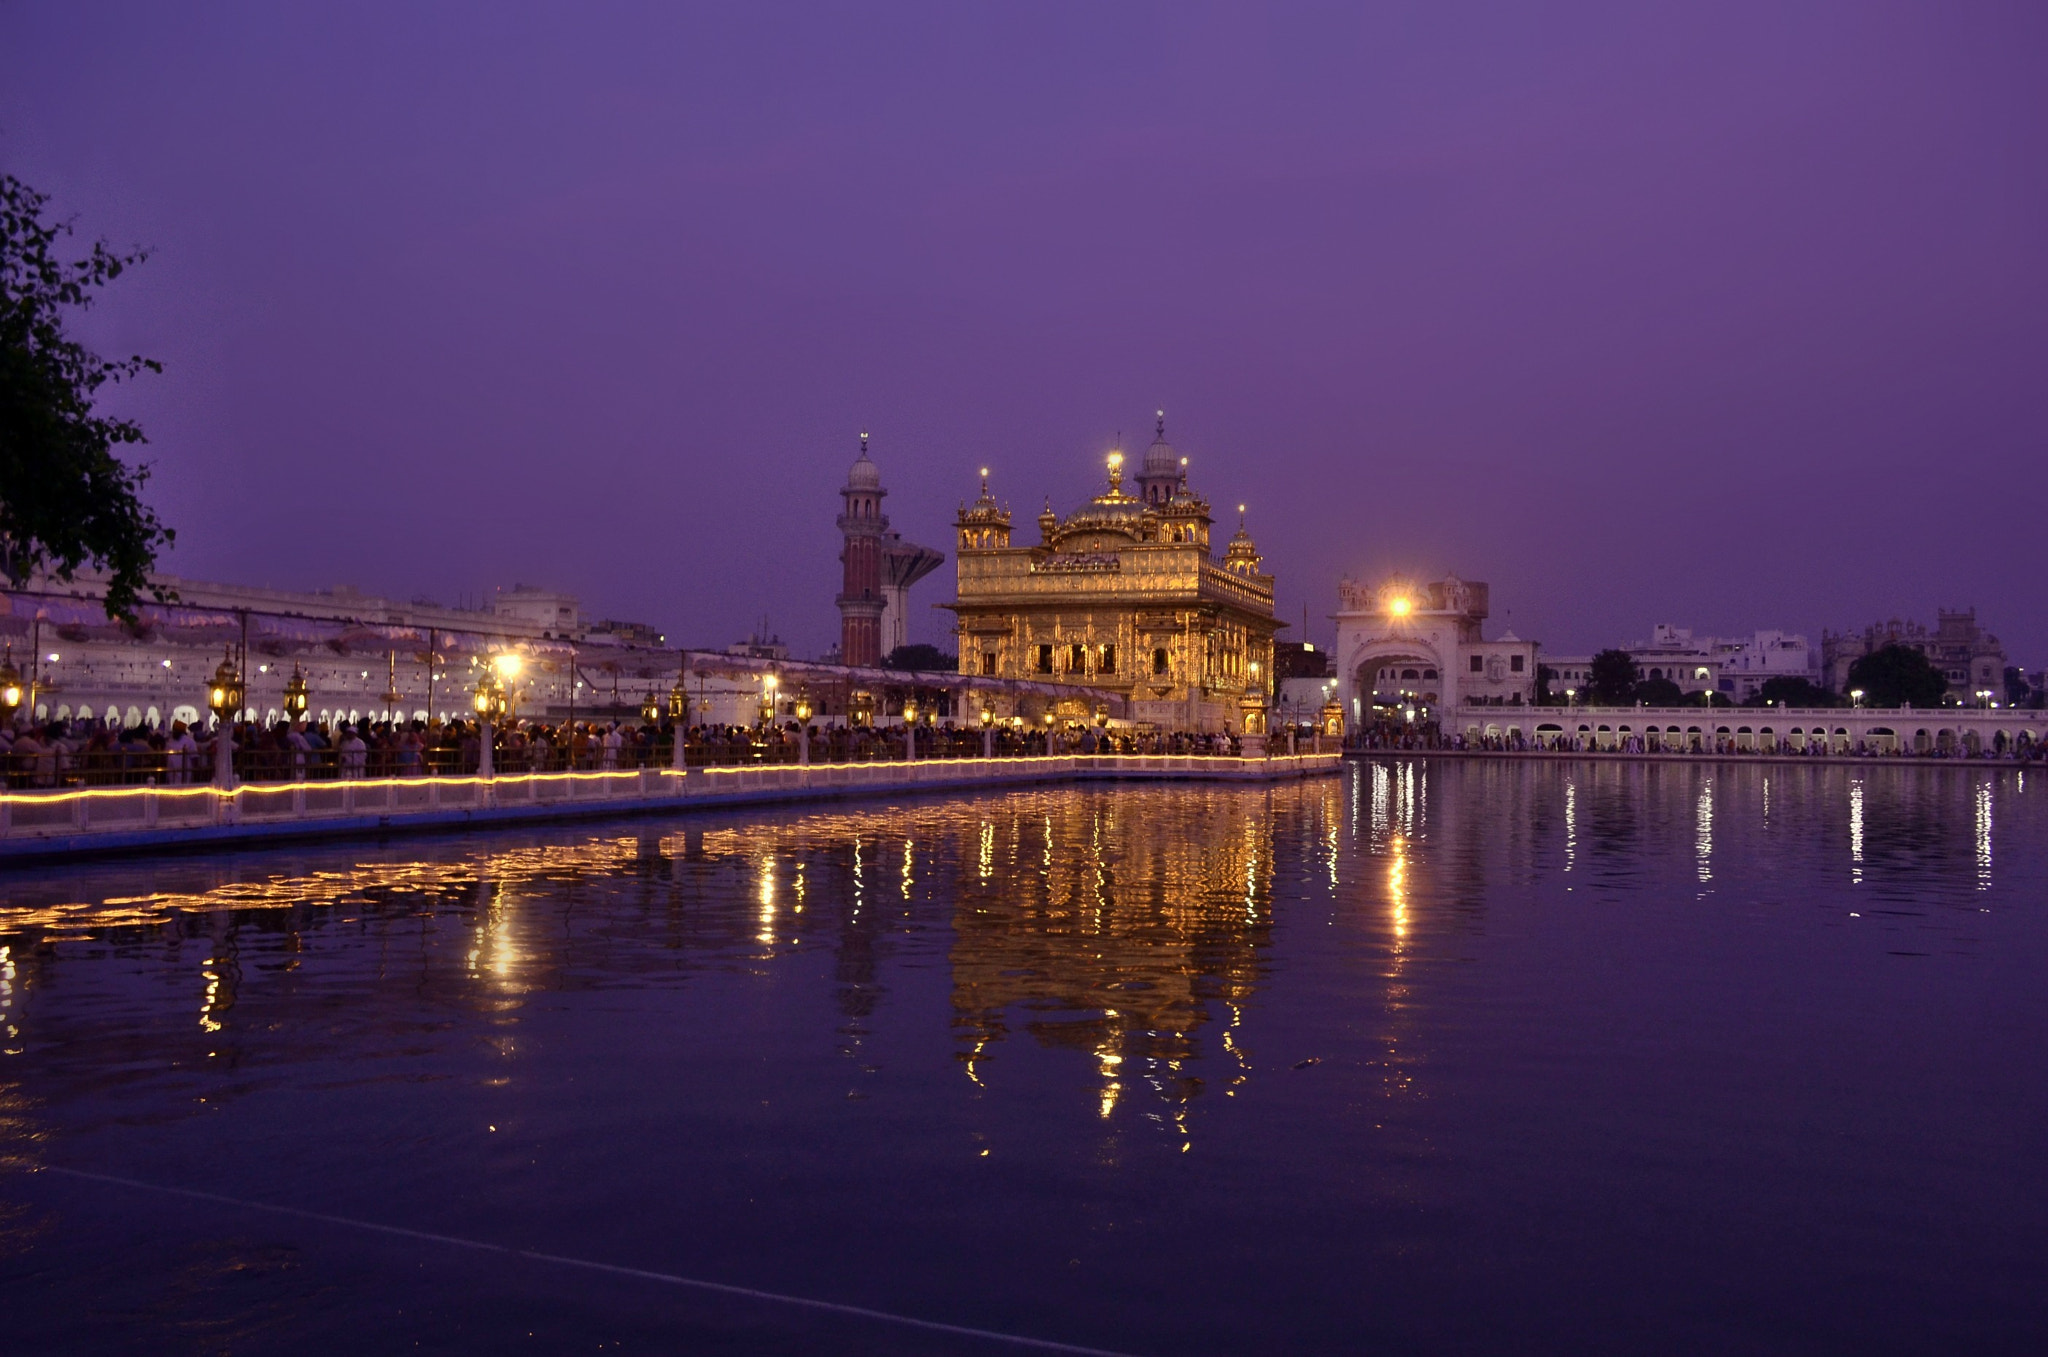 Photograph Golden Temple | Amritsar | India by Bhavik Bhavsar on 500px